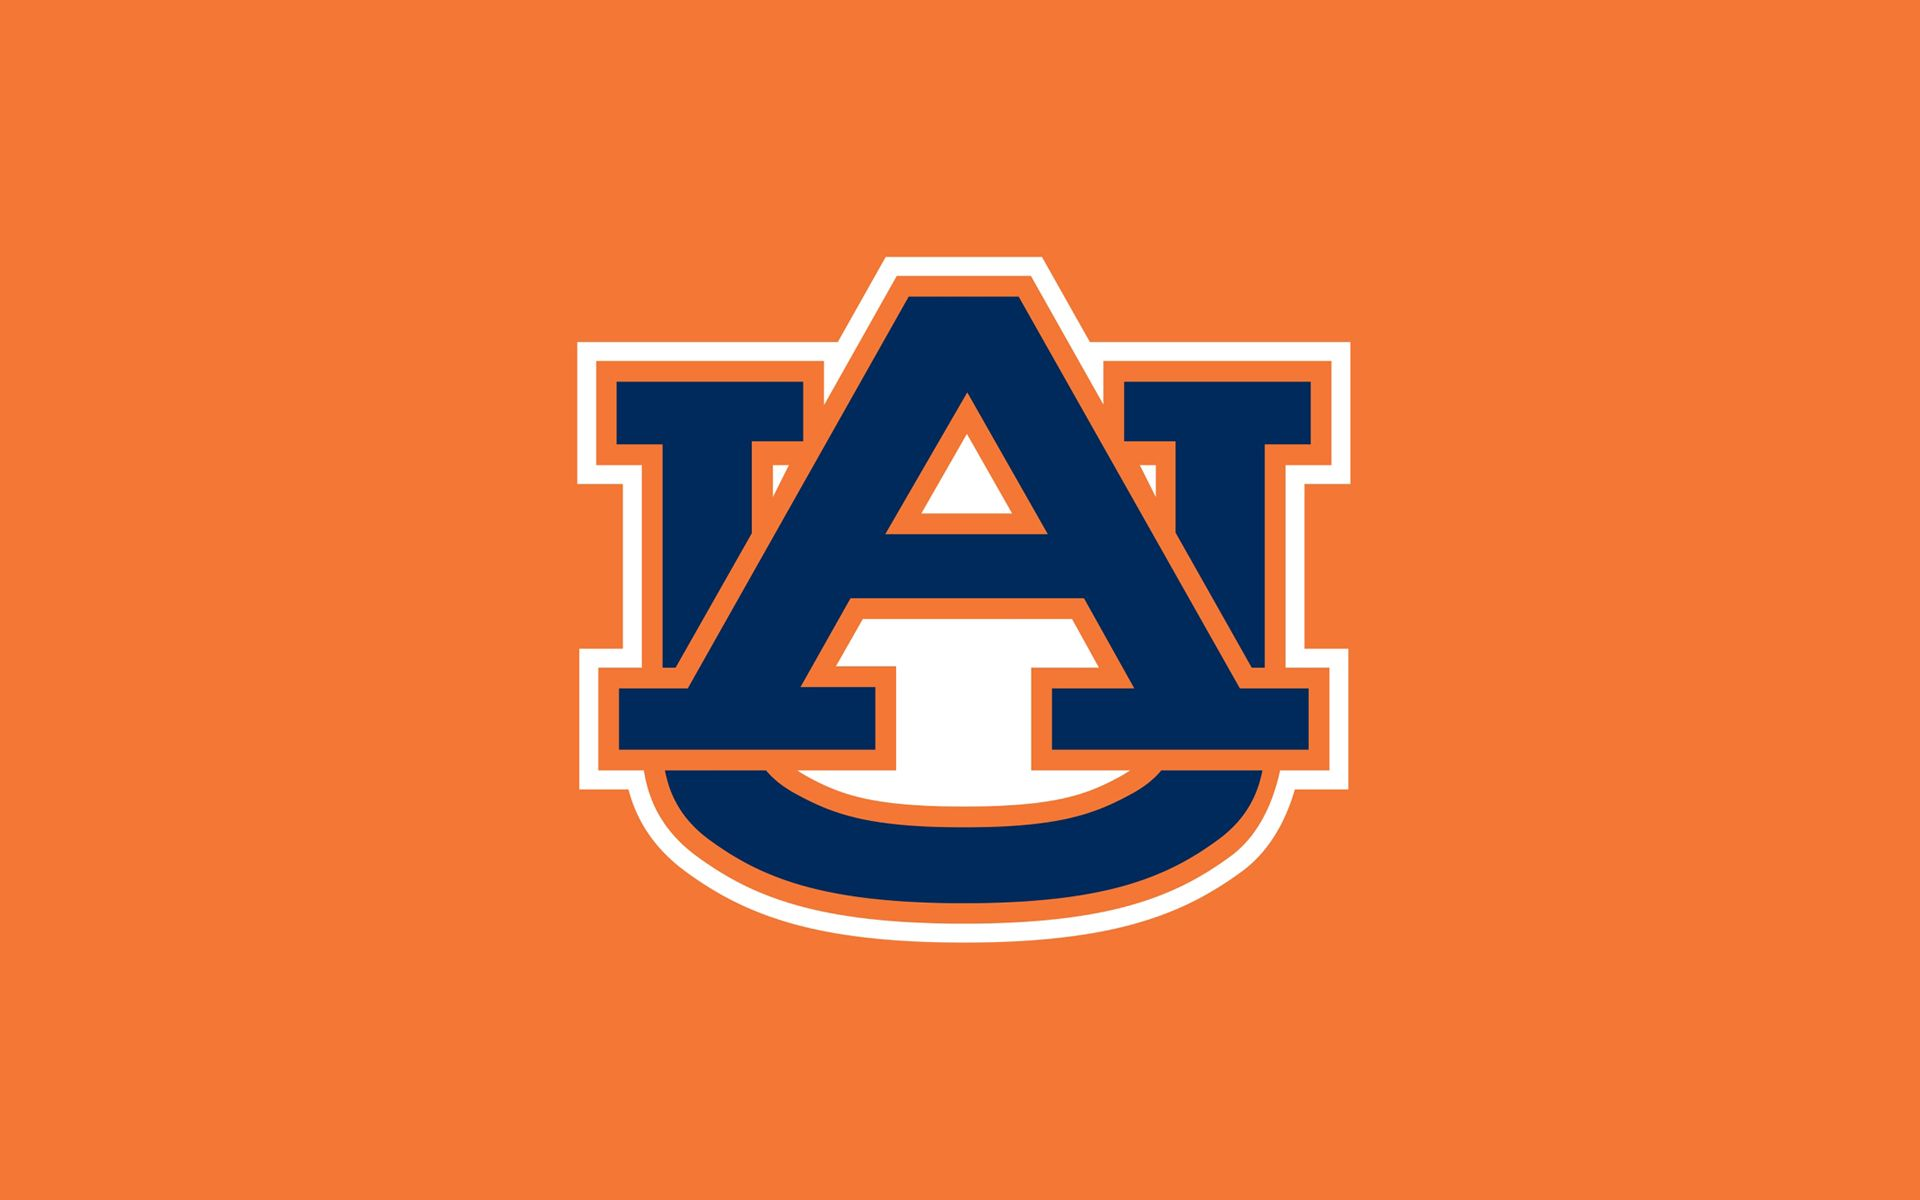 Auburn University was established in 1856 as the East Alabama Male